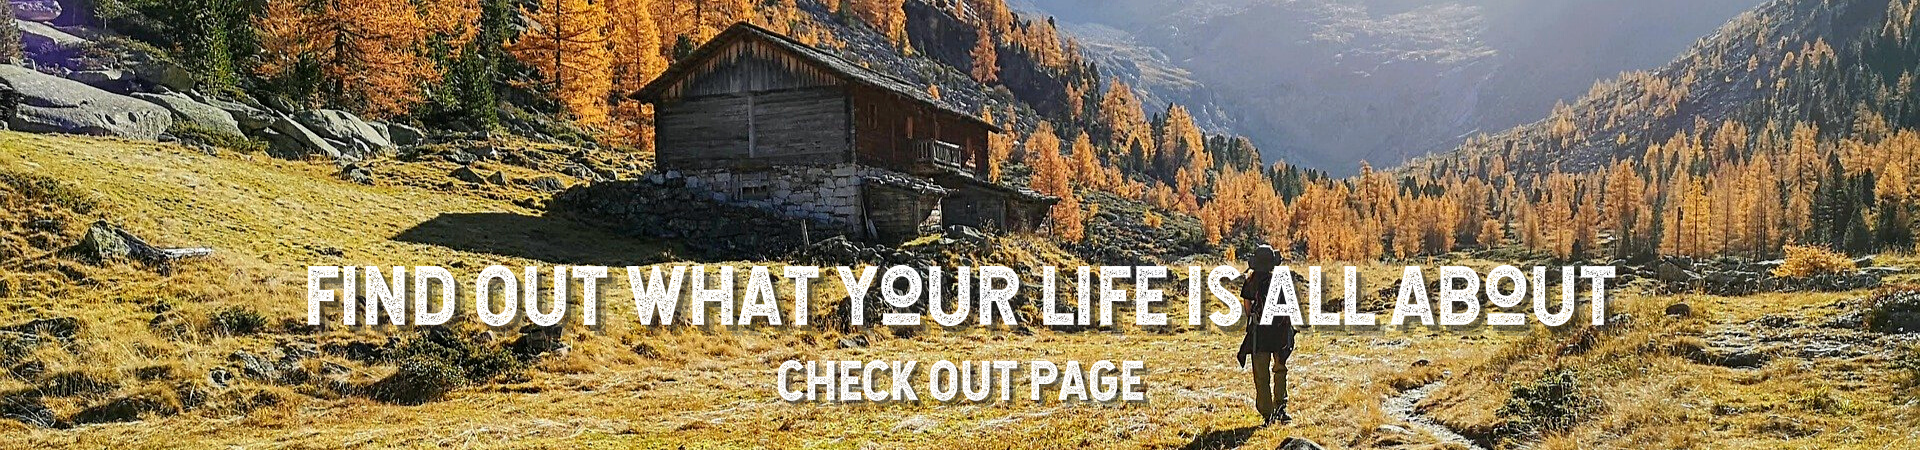 201911366 - DGH Find What Life Is About-Checkout